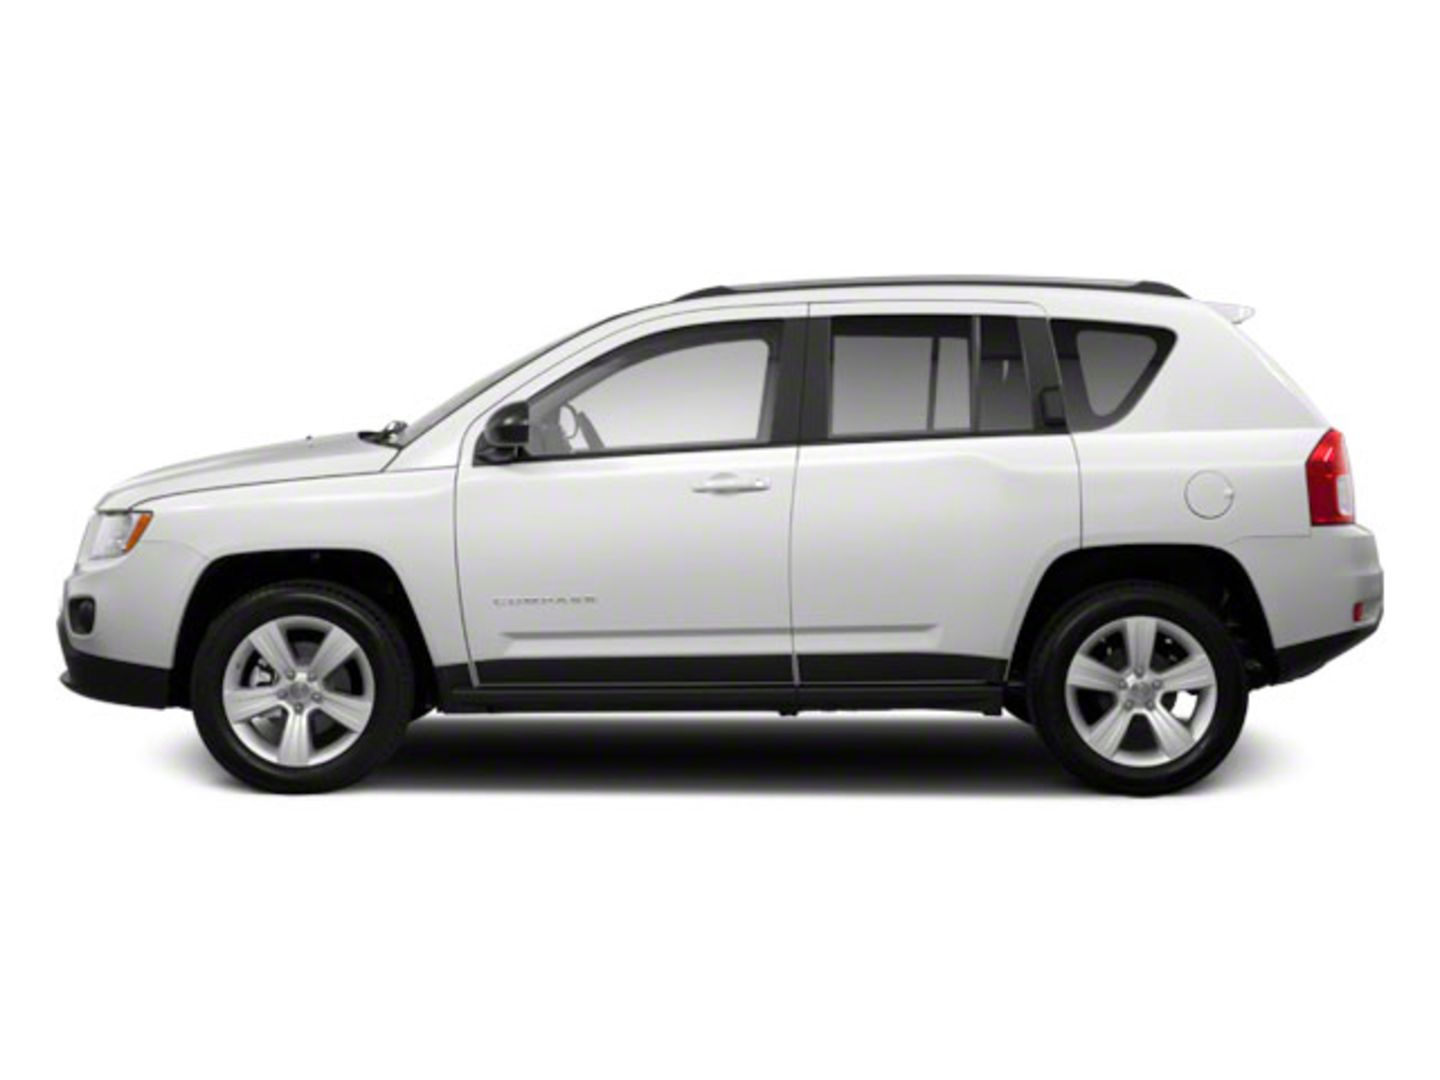 2012 Jeep Compass Limited for sale in Surrey, British Columbia